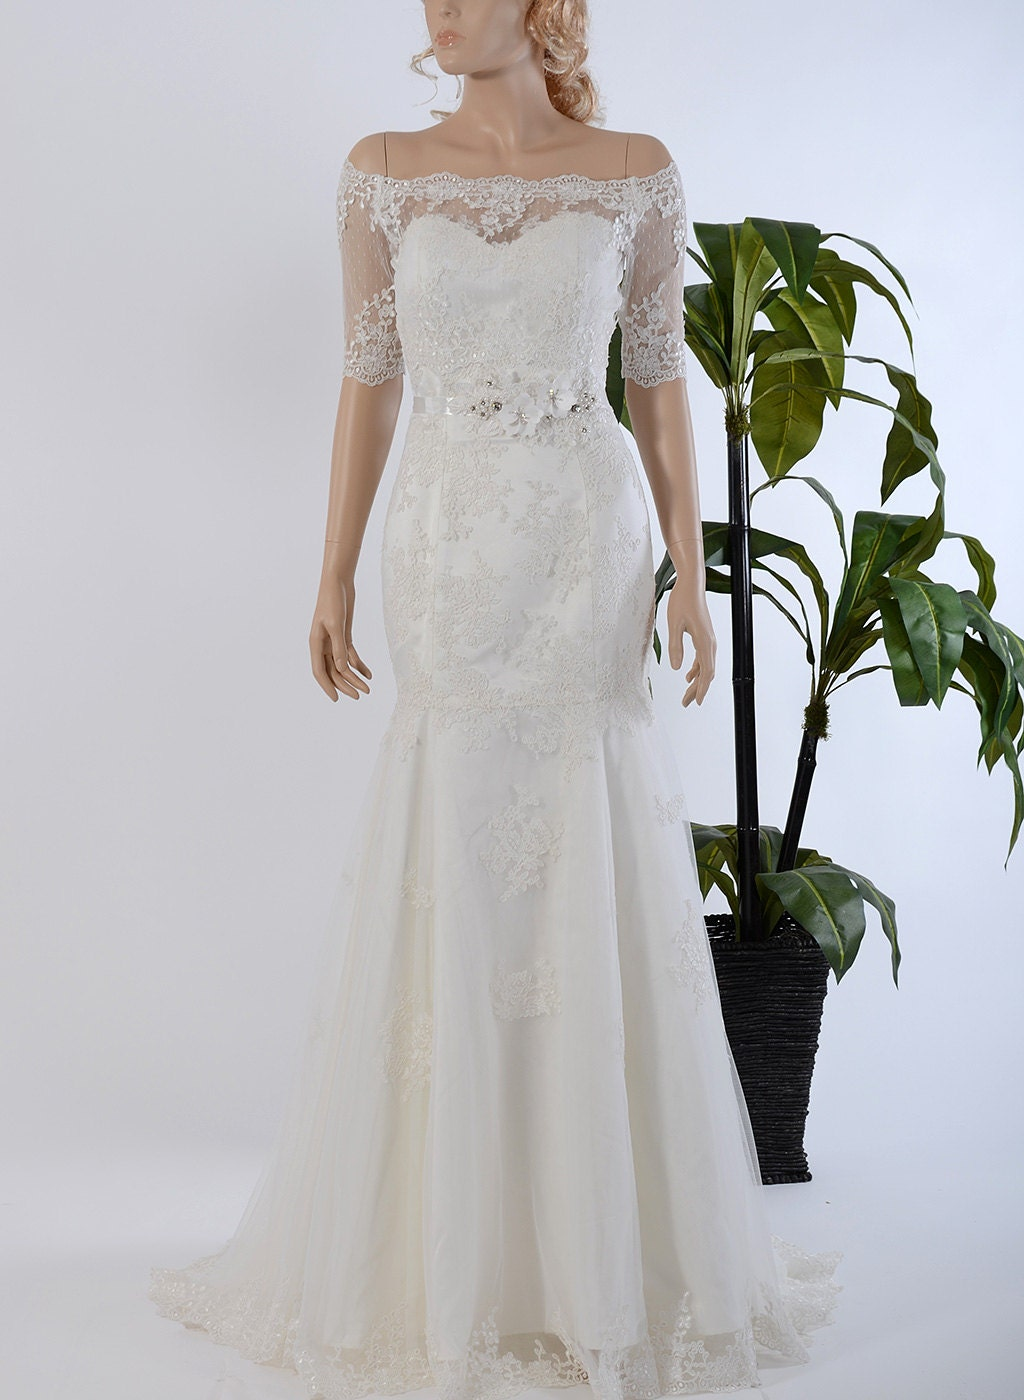 Mermaid strapless lace wedding dress with off shoulder bolero for Wedding dress lace bolero